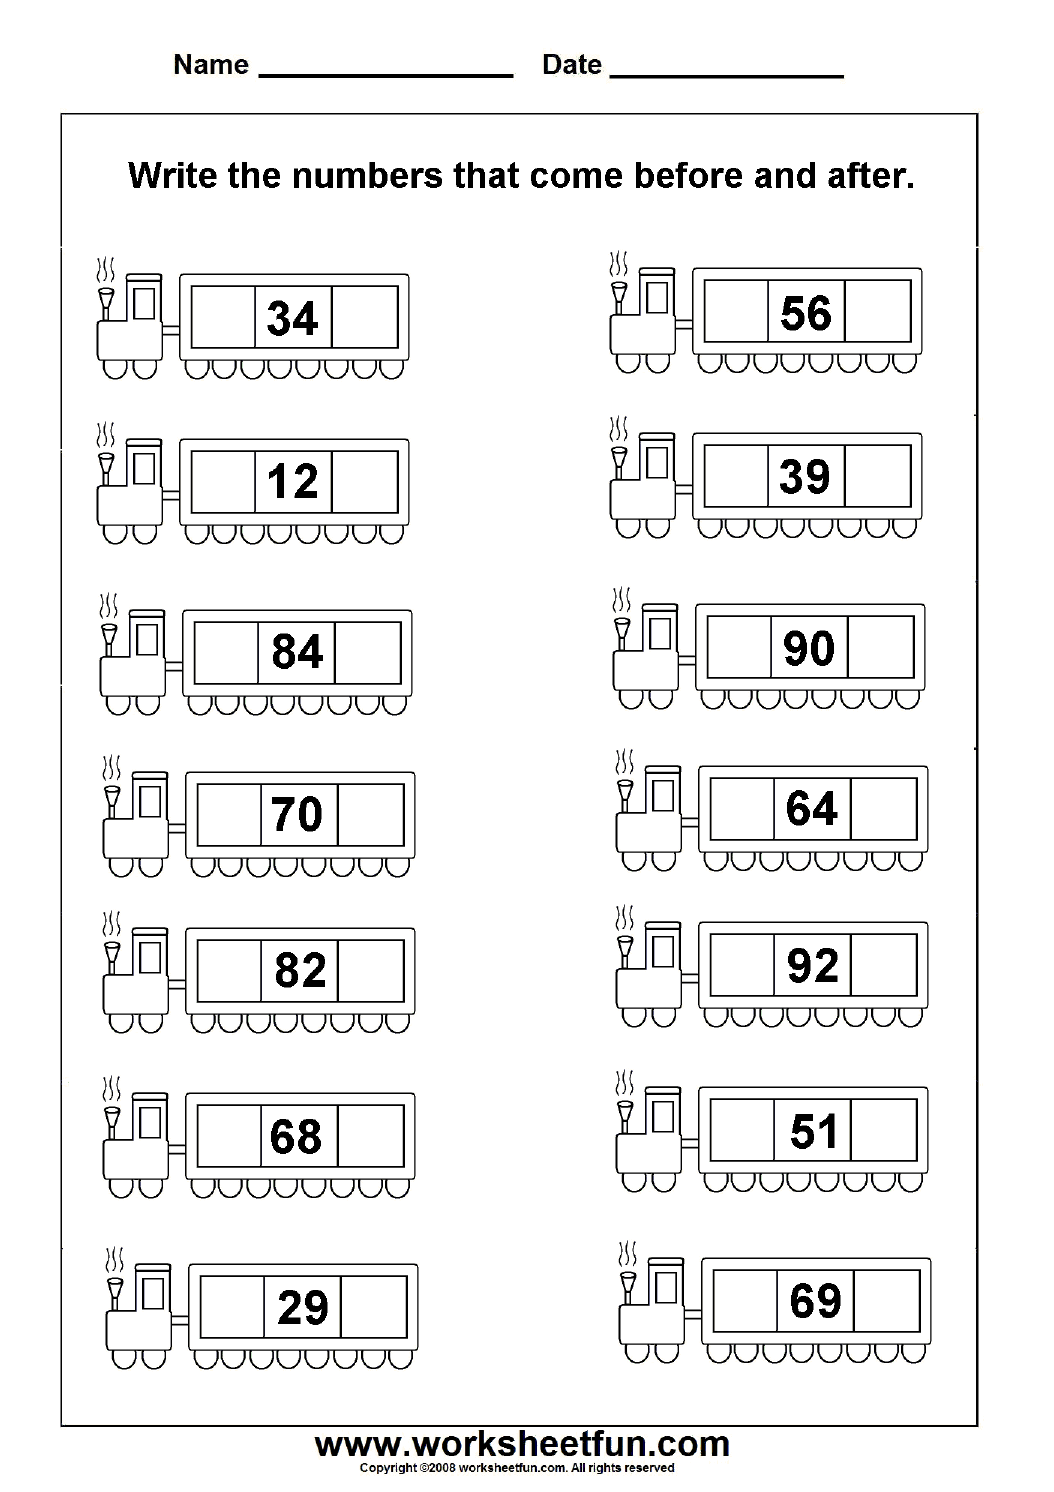 Before & After Numbers - 2 Worksheets | Printable Worksheets | Math ...